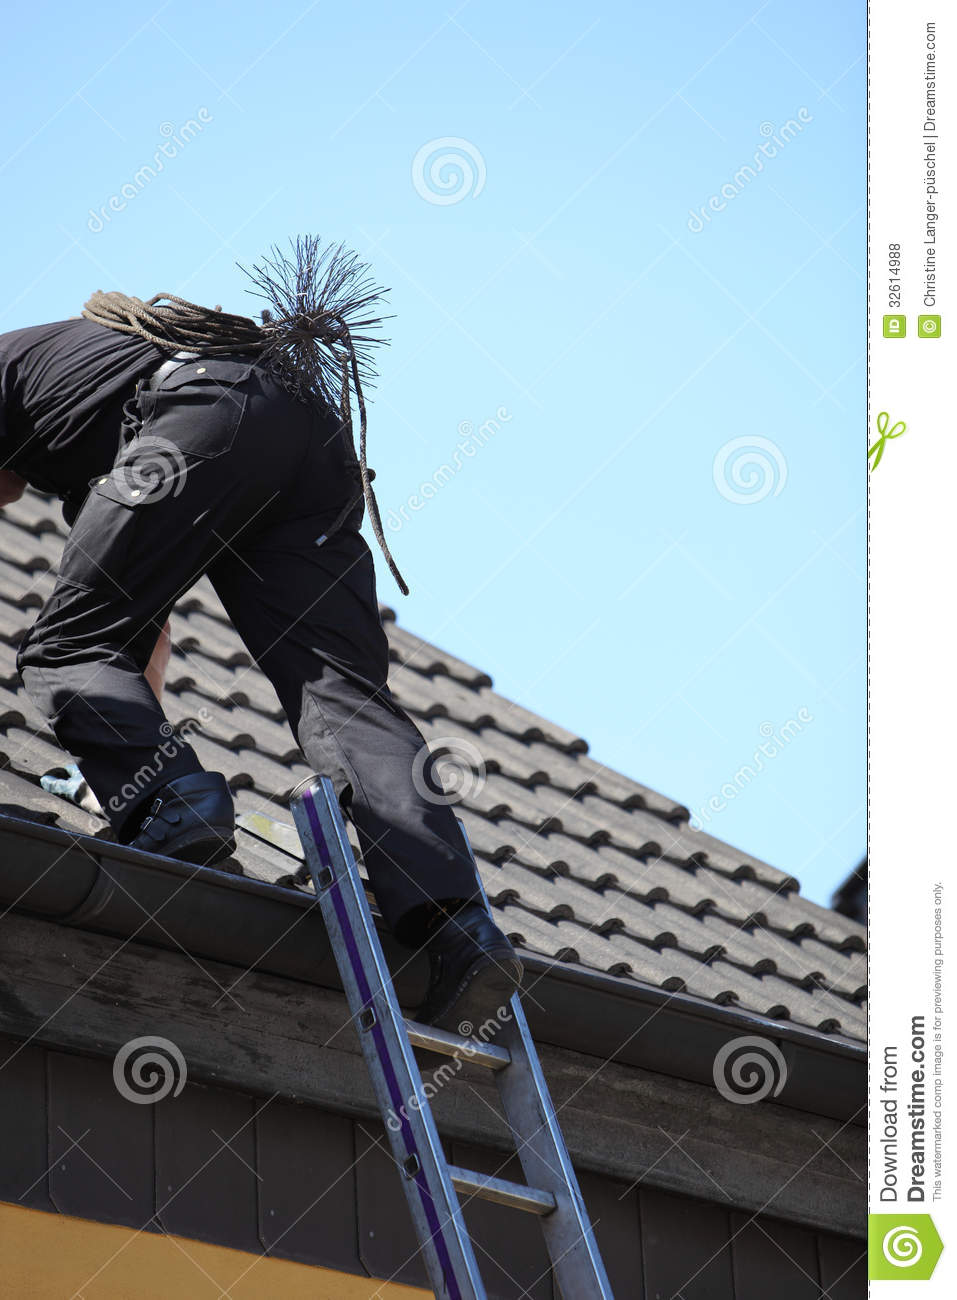 Chimney Sweep Climbing Onto The Roof Of A House Royalty ...